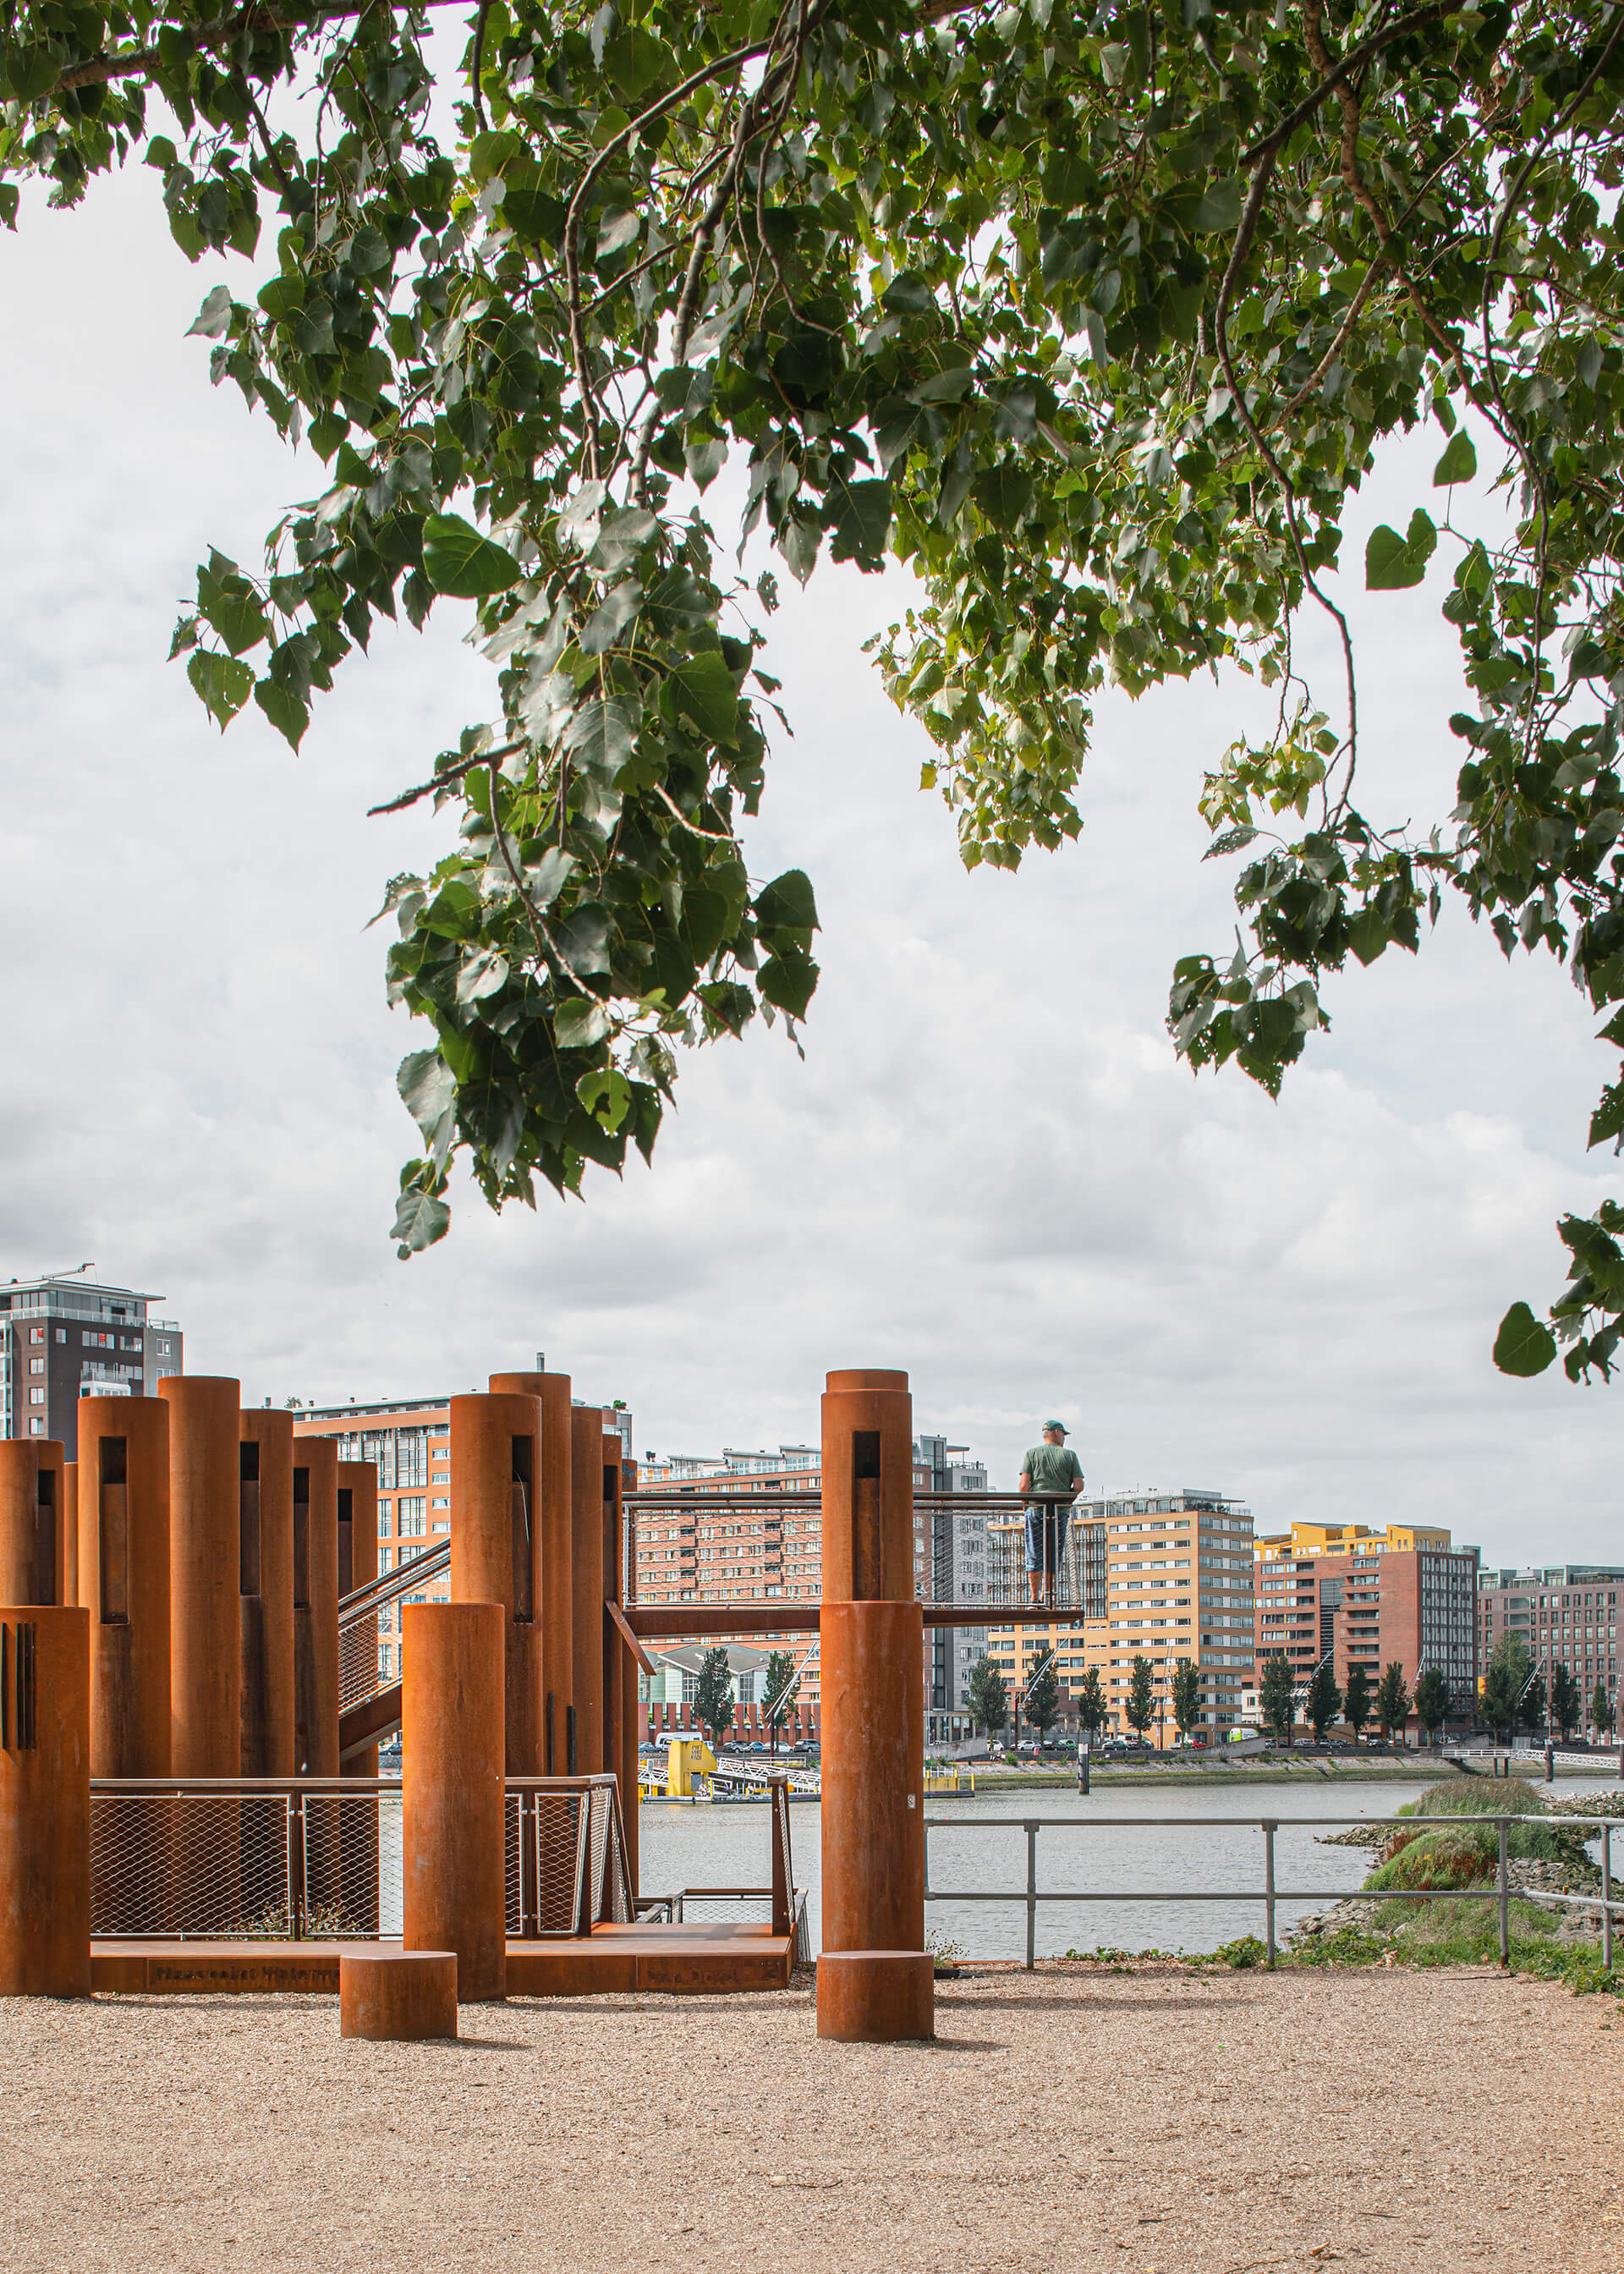 Water Woods, a new urban space for the Rotterdam city | Water Woods Maaspoints | Next Architects | STIRworld